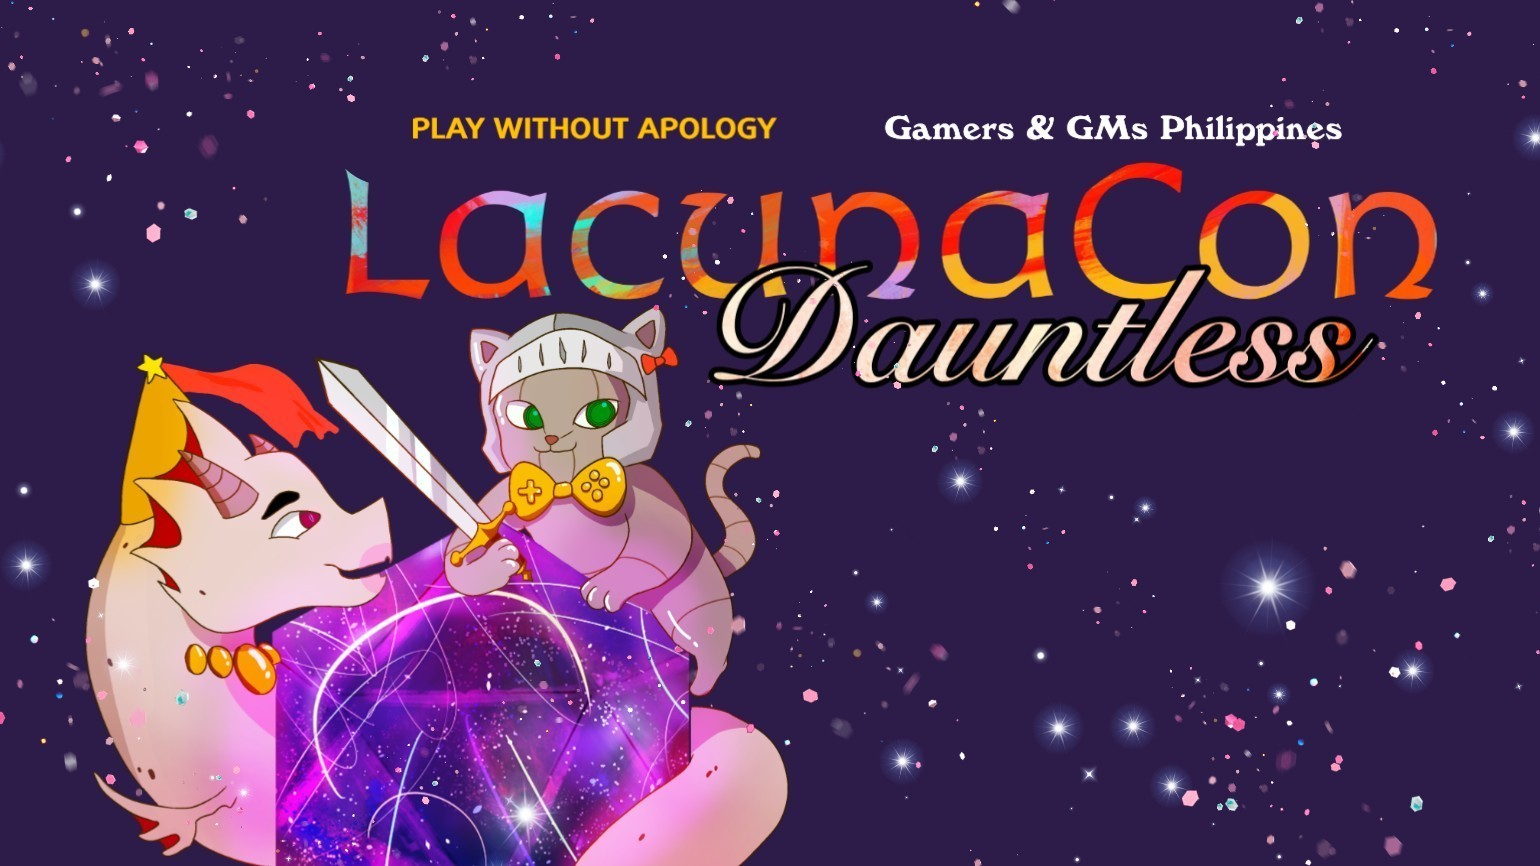 Road to #LacunaCon2019: Are you ready to play without apology?